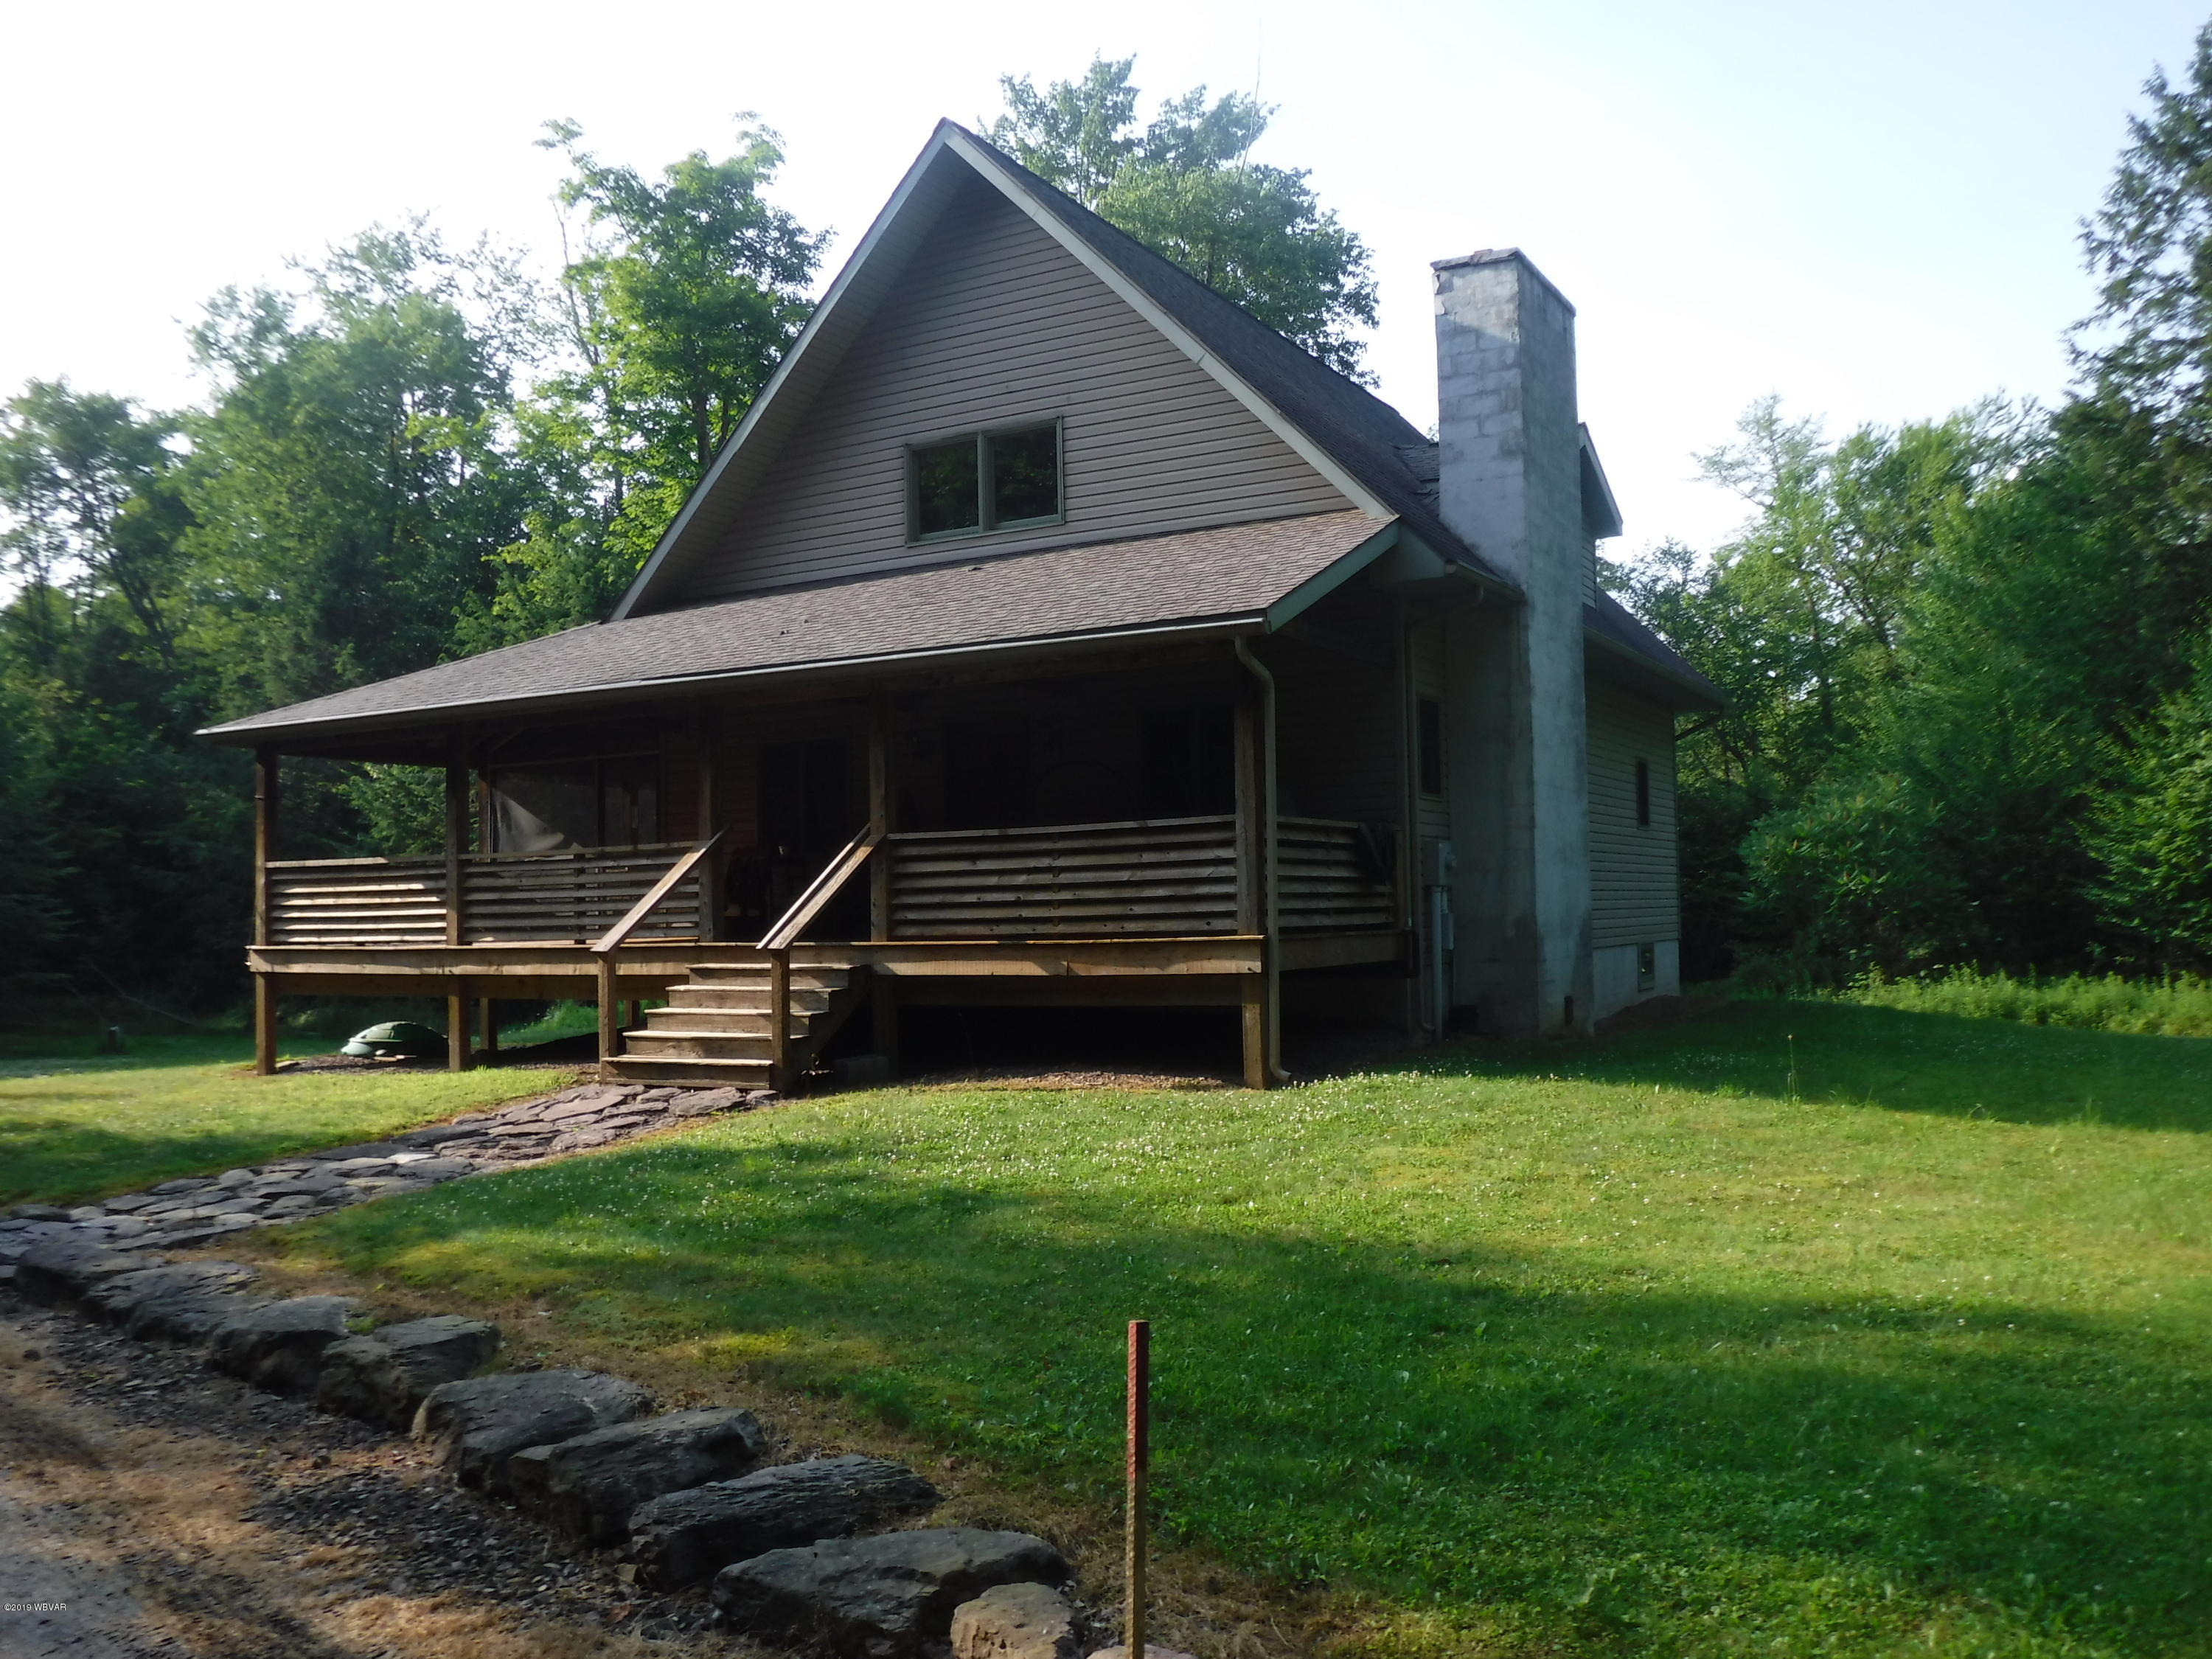 837 MILLVIEW MOUNTAIN ROAD,Forksville,PA 18616,3 Bedrooms Bedrooms,2 BathroomsBathrooms,Residential,MILLVIEW MOUNTAIN,WB-87949